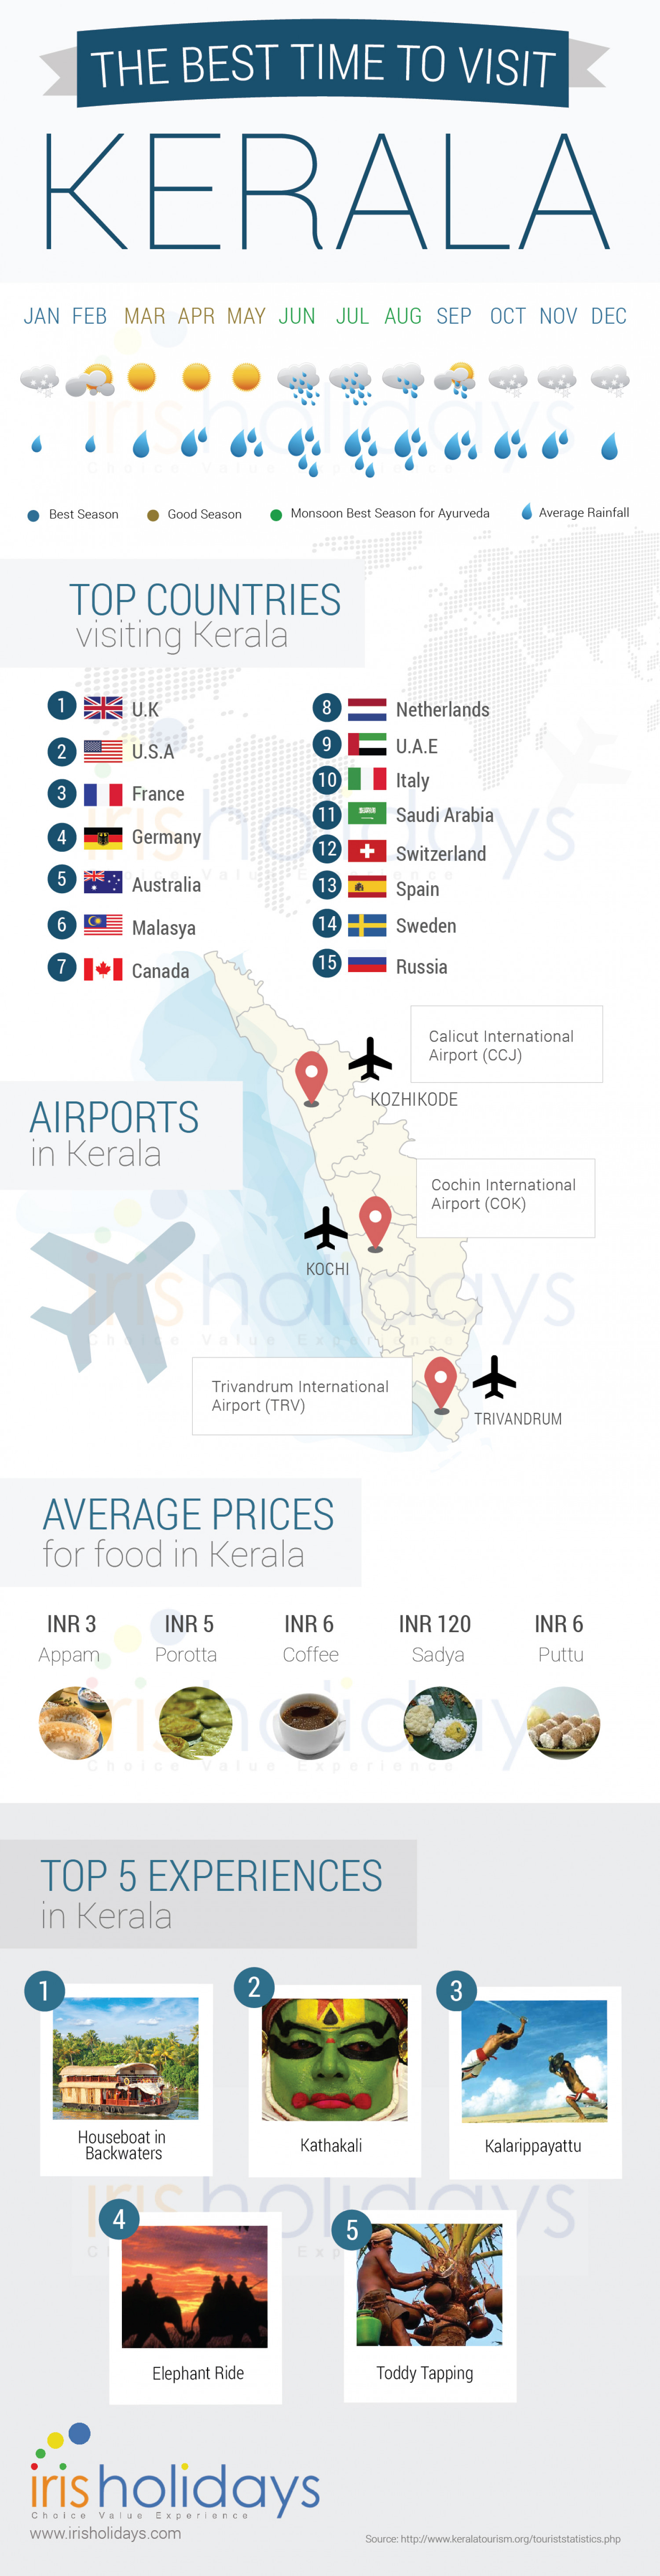 Best time to Visit Kerala Infographic